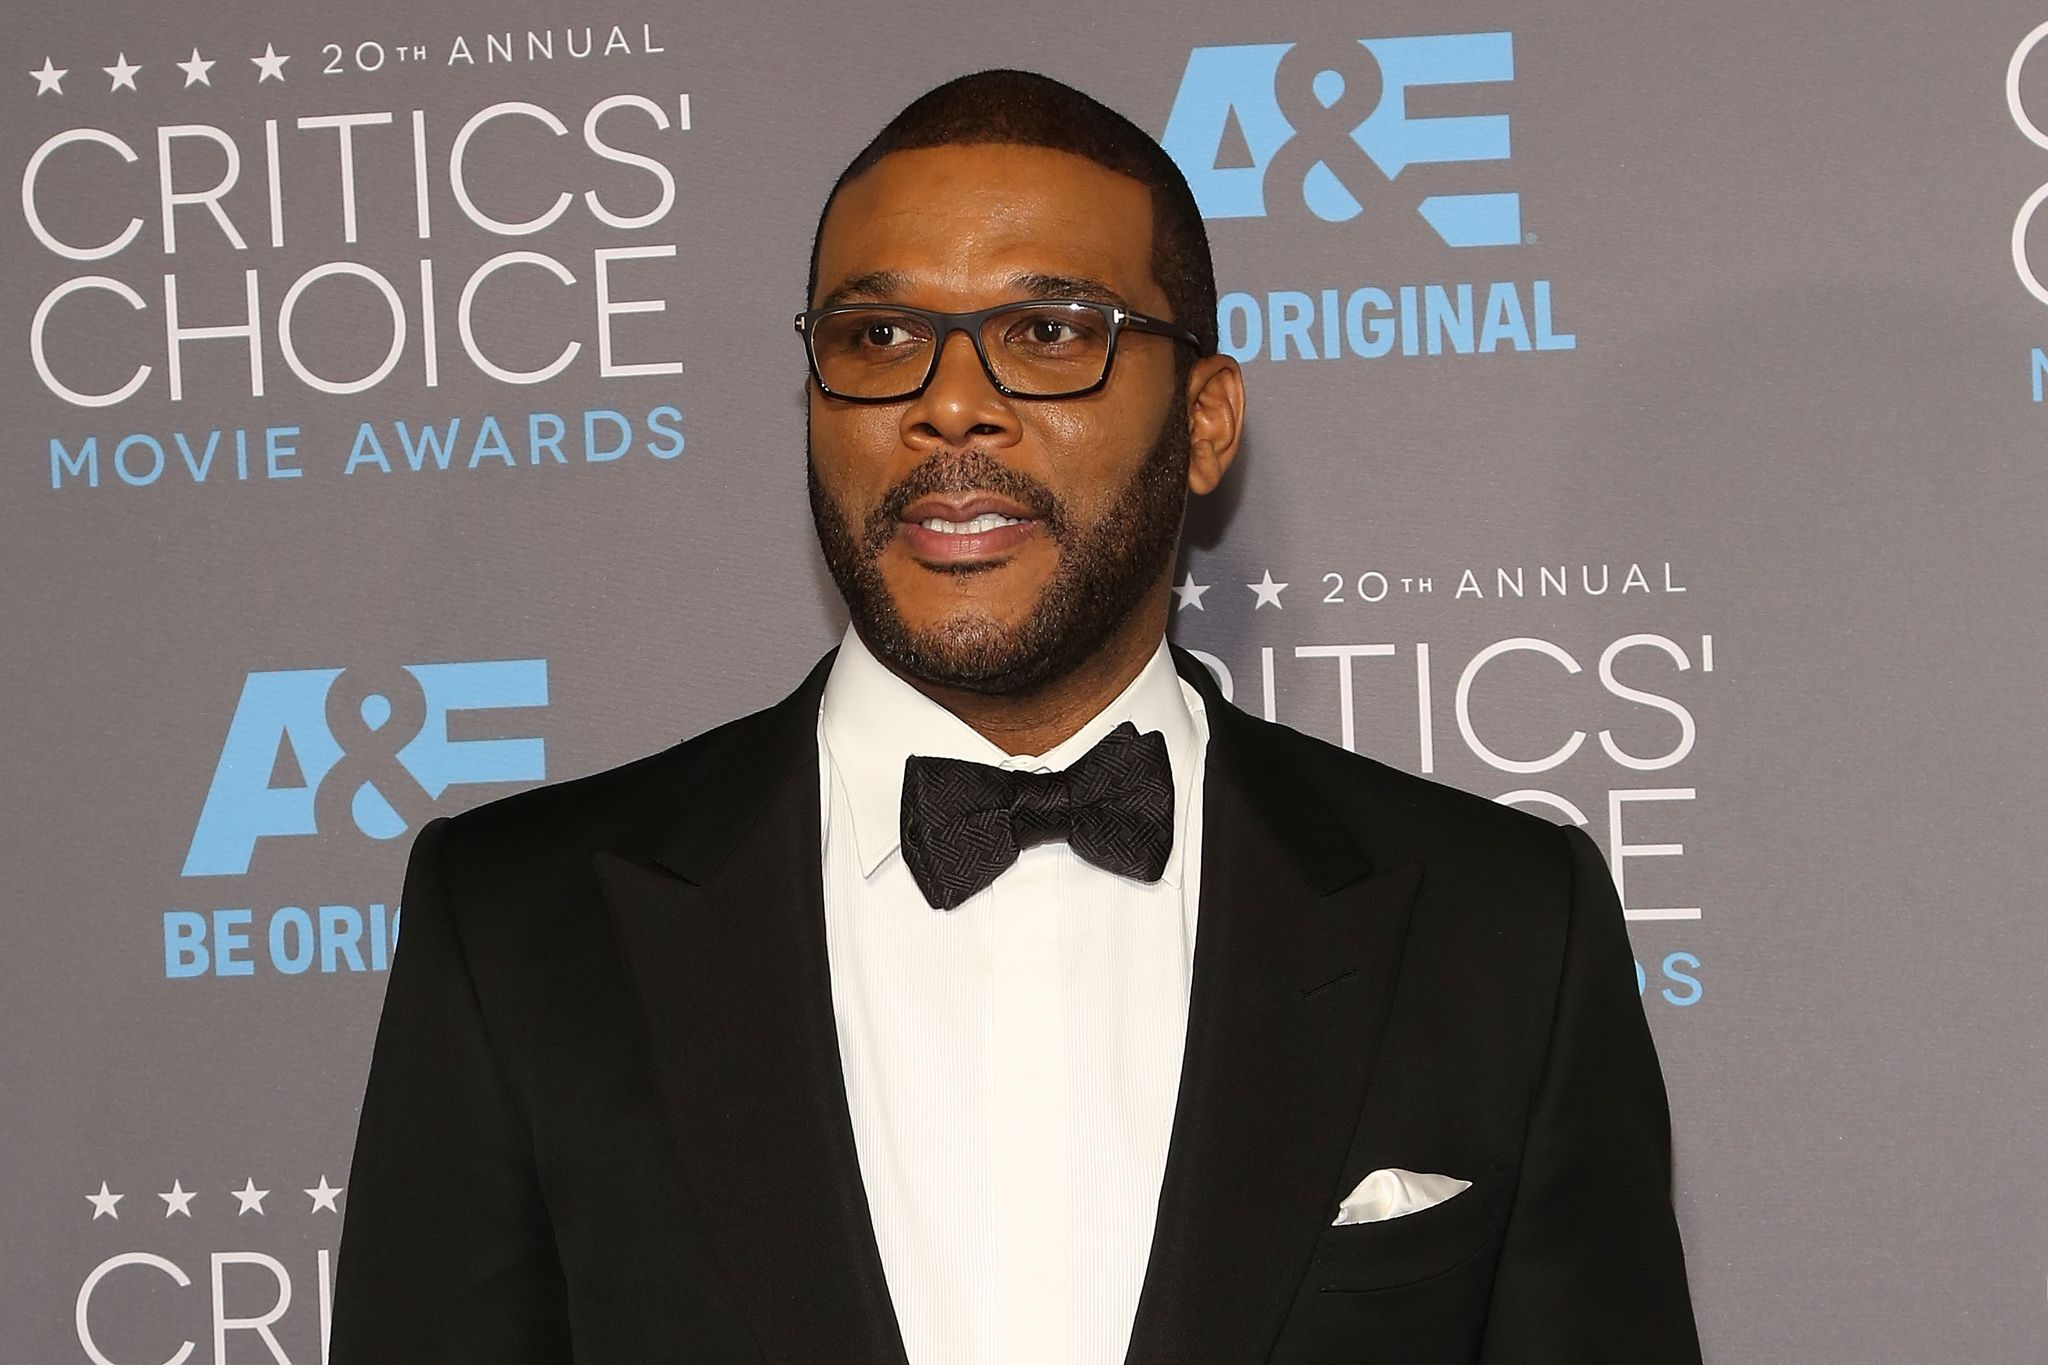 Tyler Perry at the 20th Annual Critics' Choice Movie Awards in 2015 in Los Angeles | Source: Getty Images